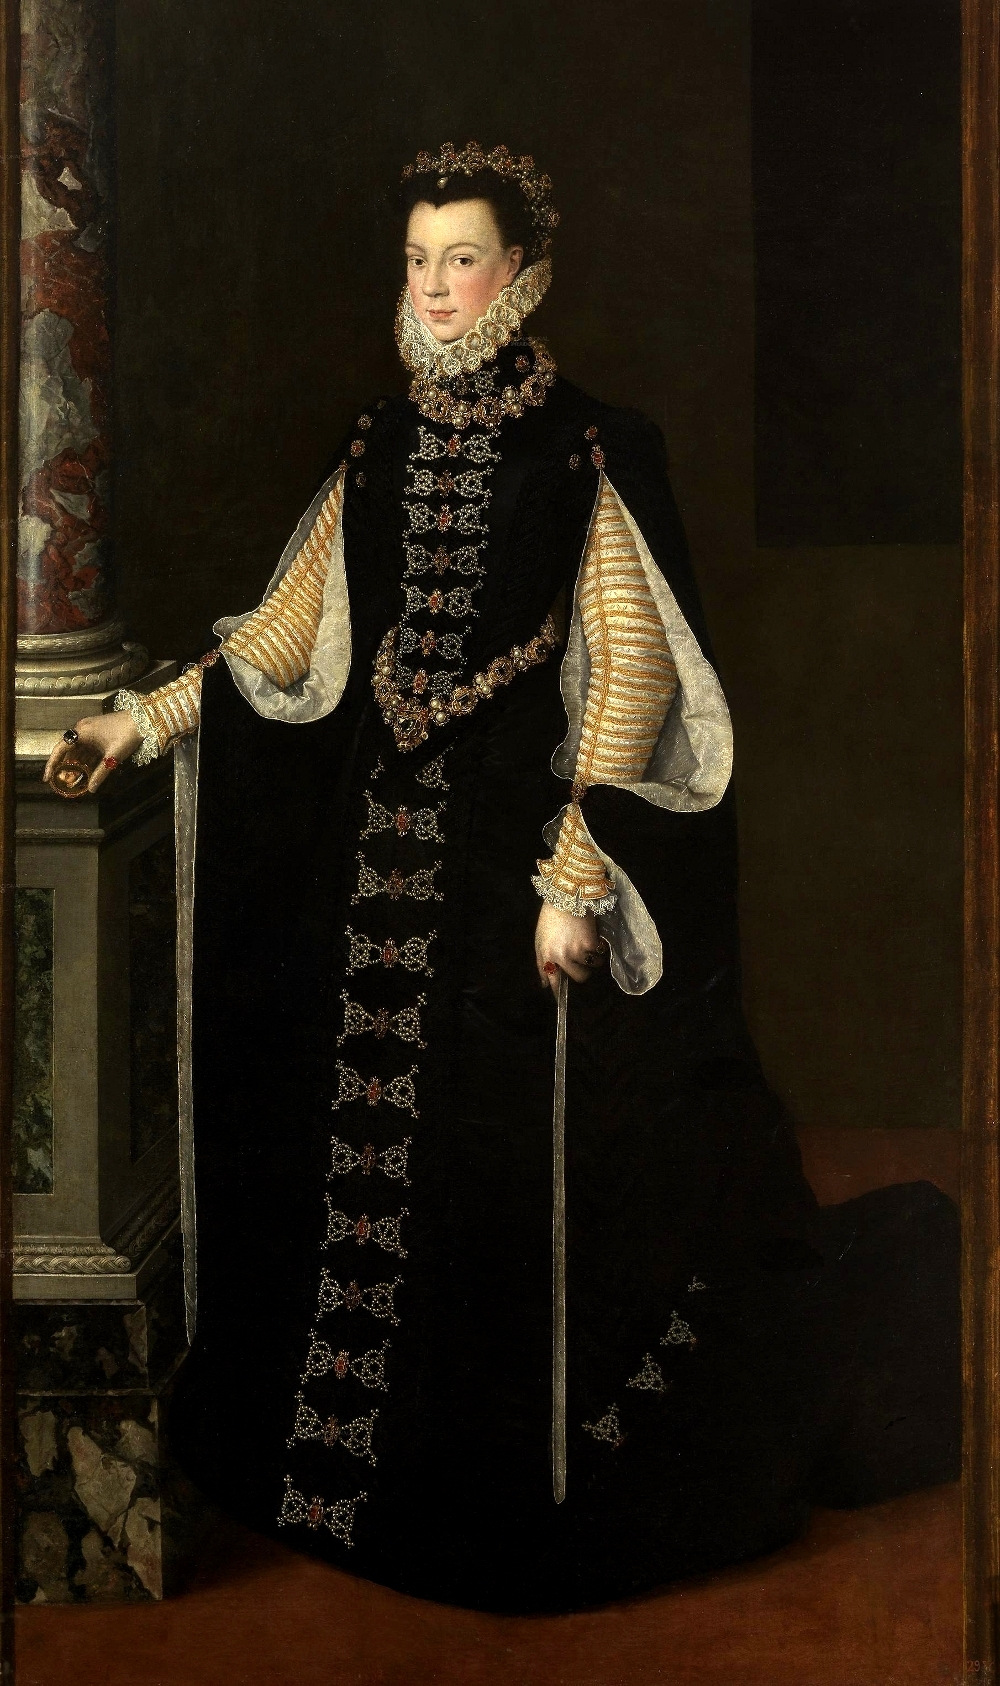 Sofonisba Anguissola, Portrait of Elizabeth of Valois Holding a Portrait of Philip II, 1561 - 1565. Oil on canvas.